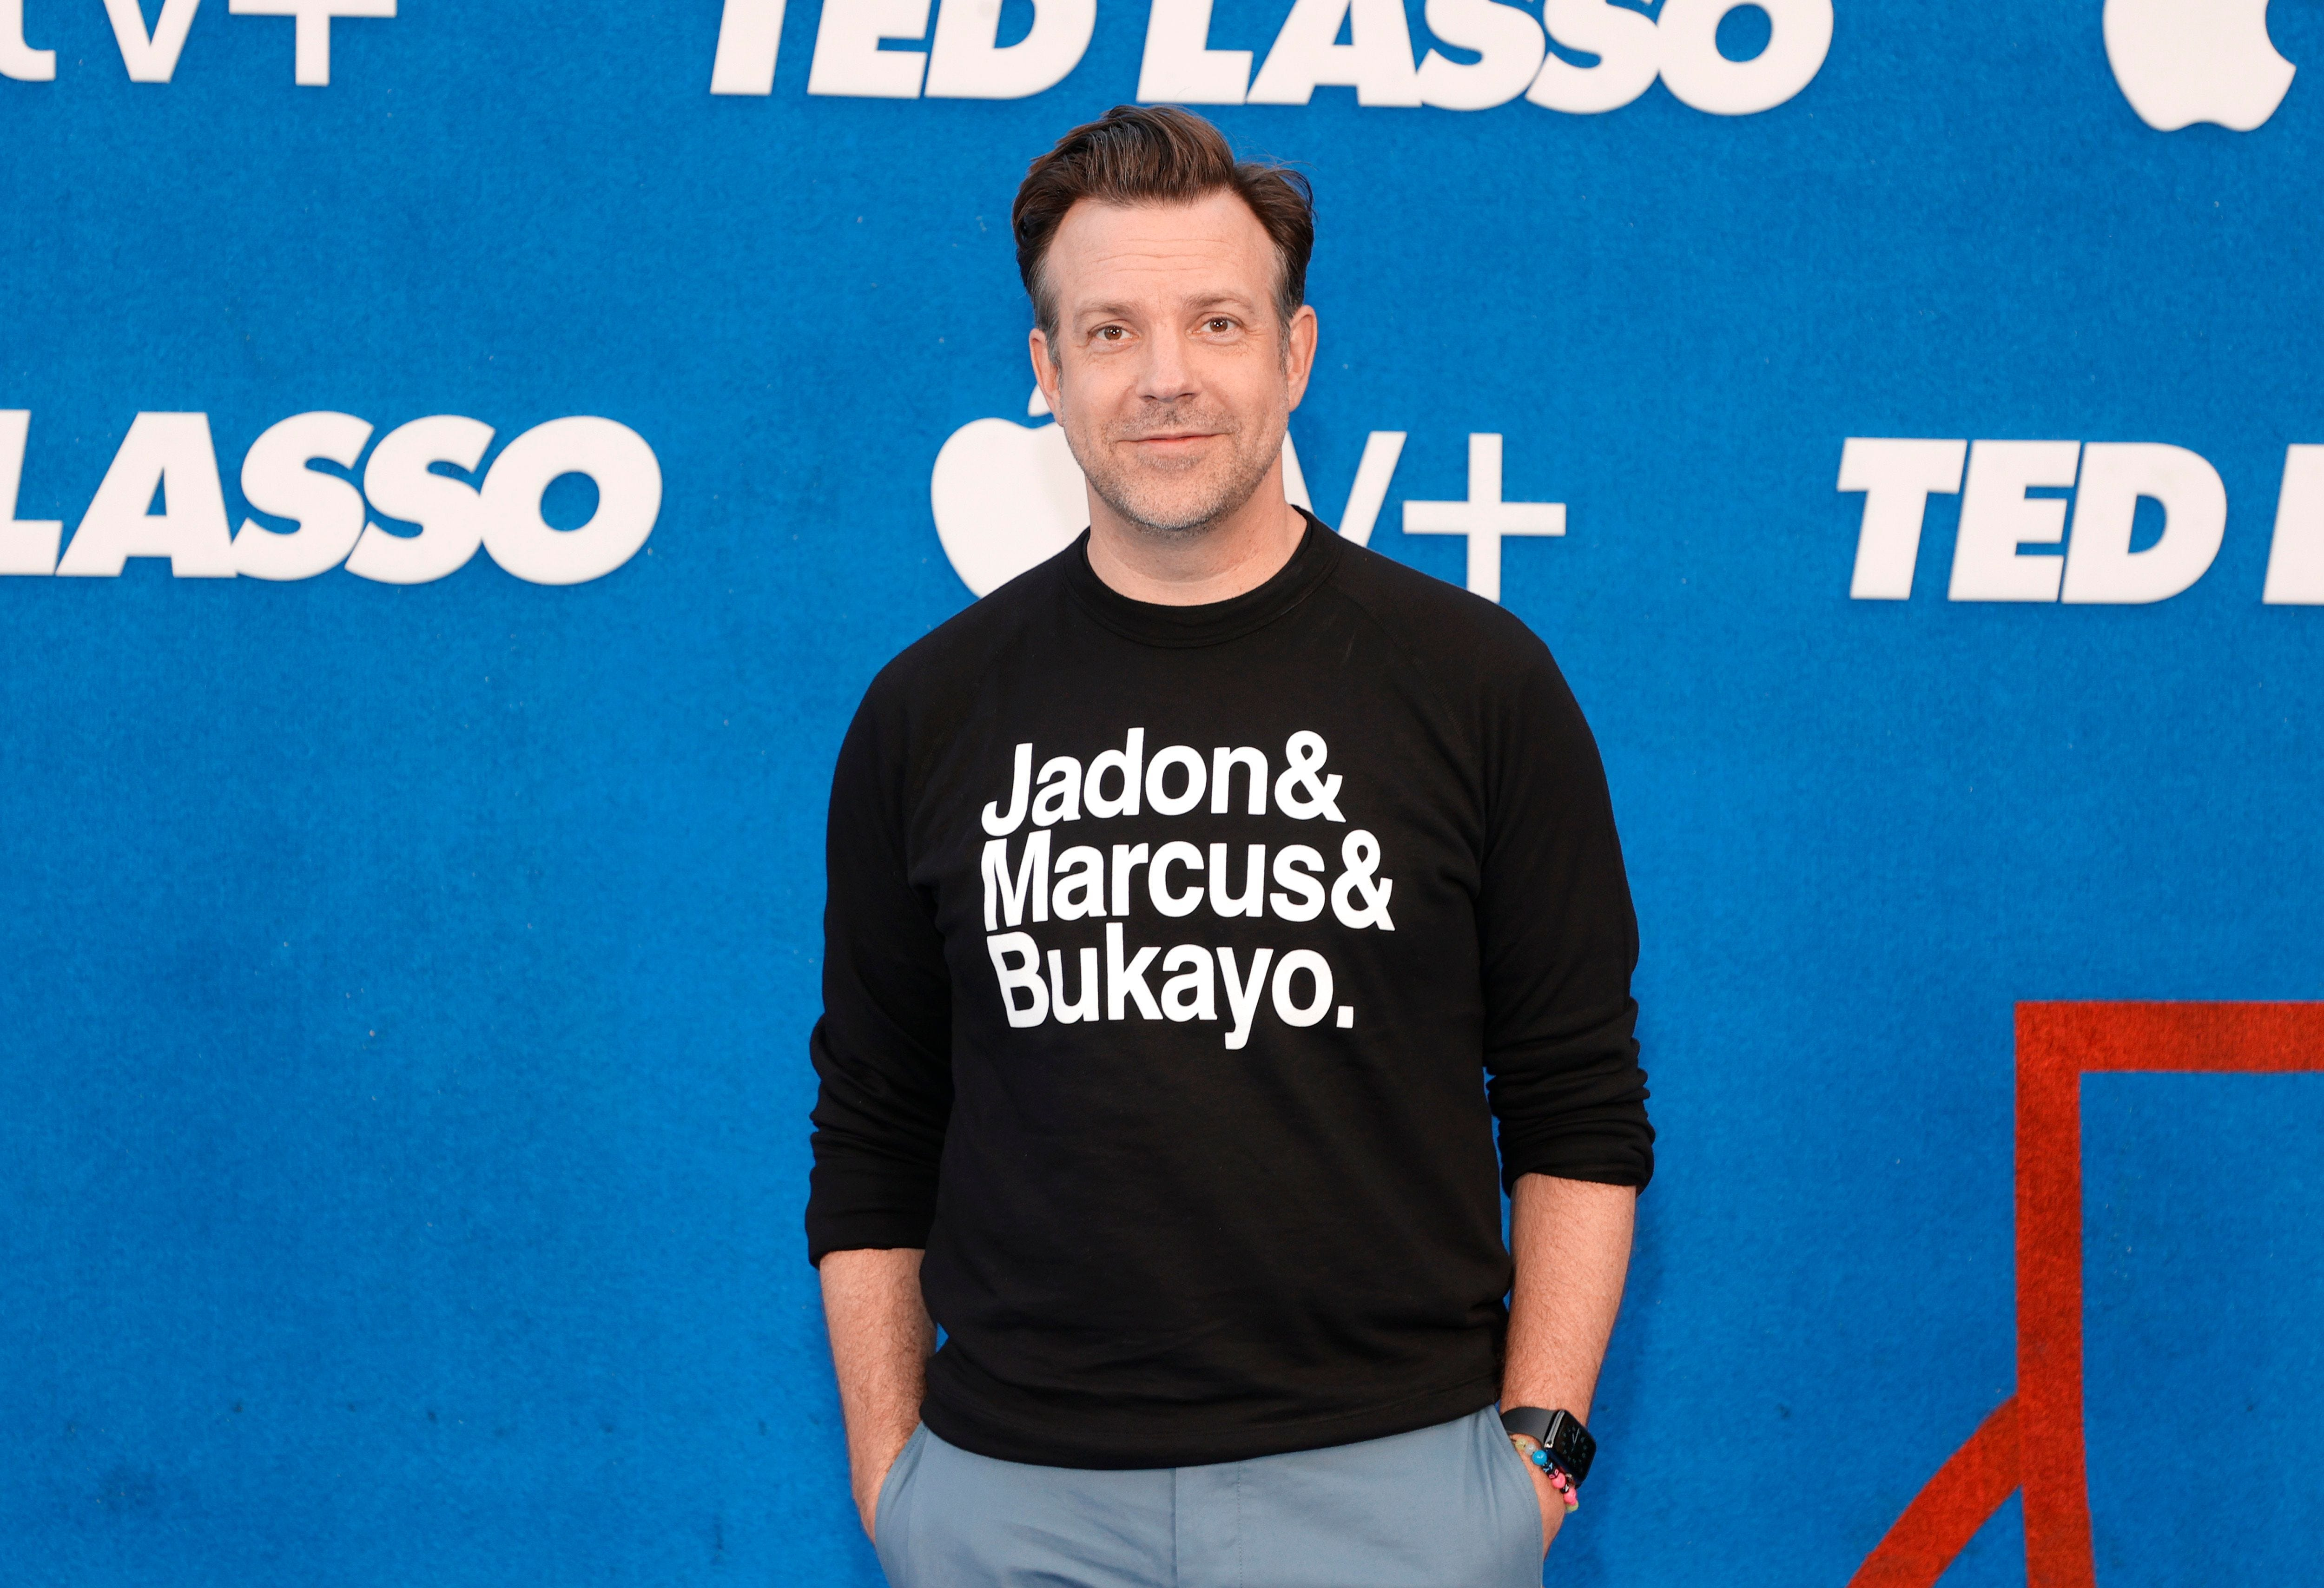 Jason Sudeikis wears shirt at 'Ted Lasso' premiere supporting England soccer players who faced abuse